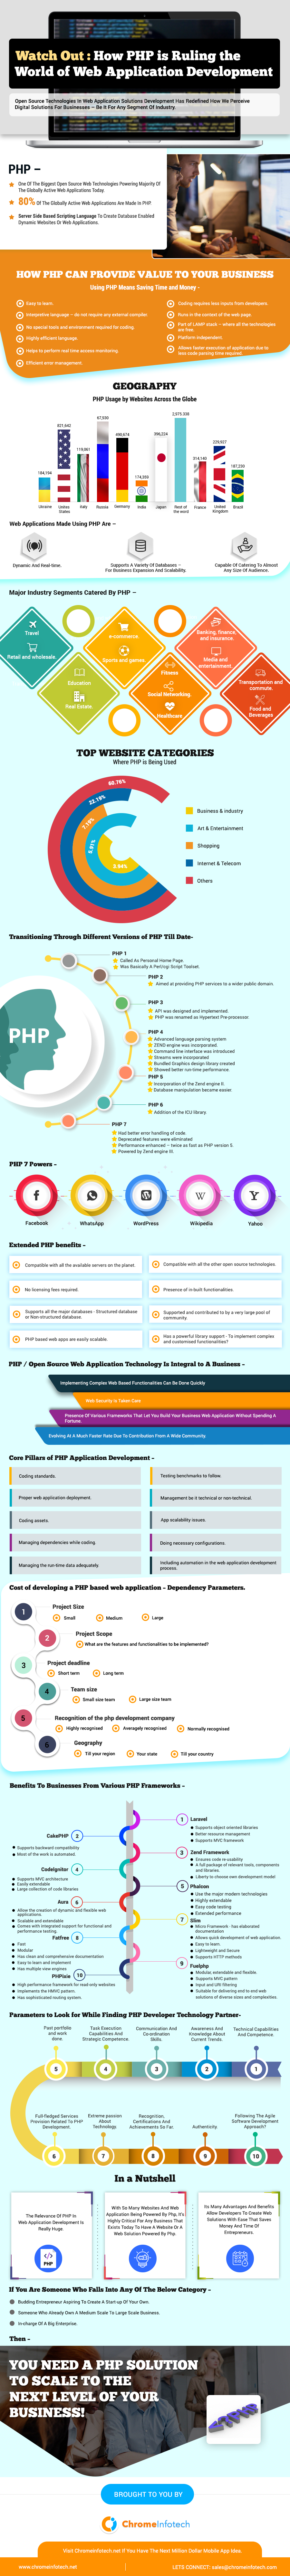 php infographic